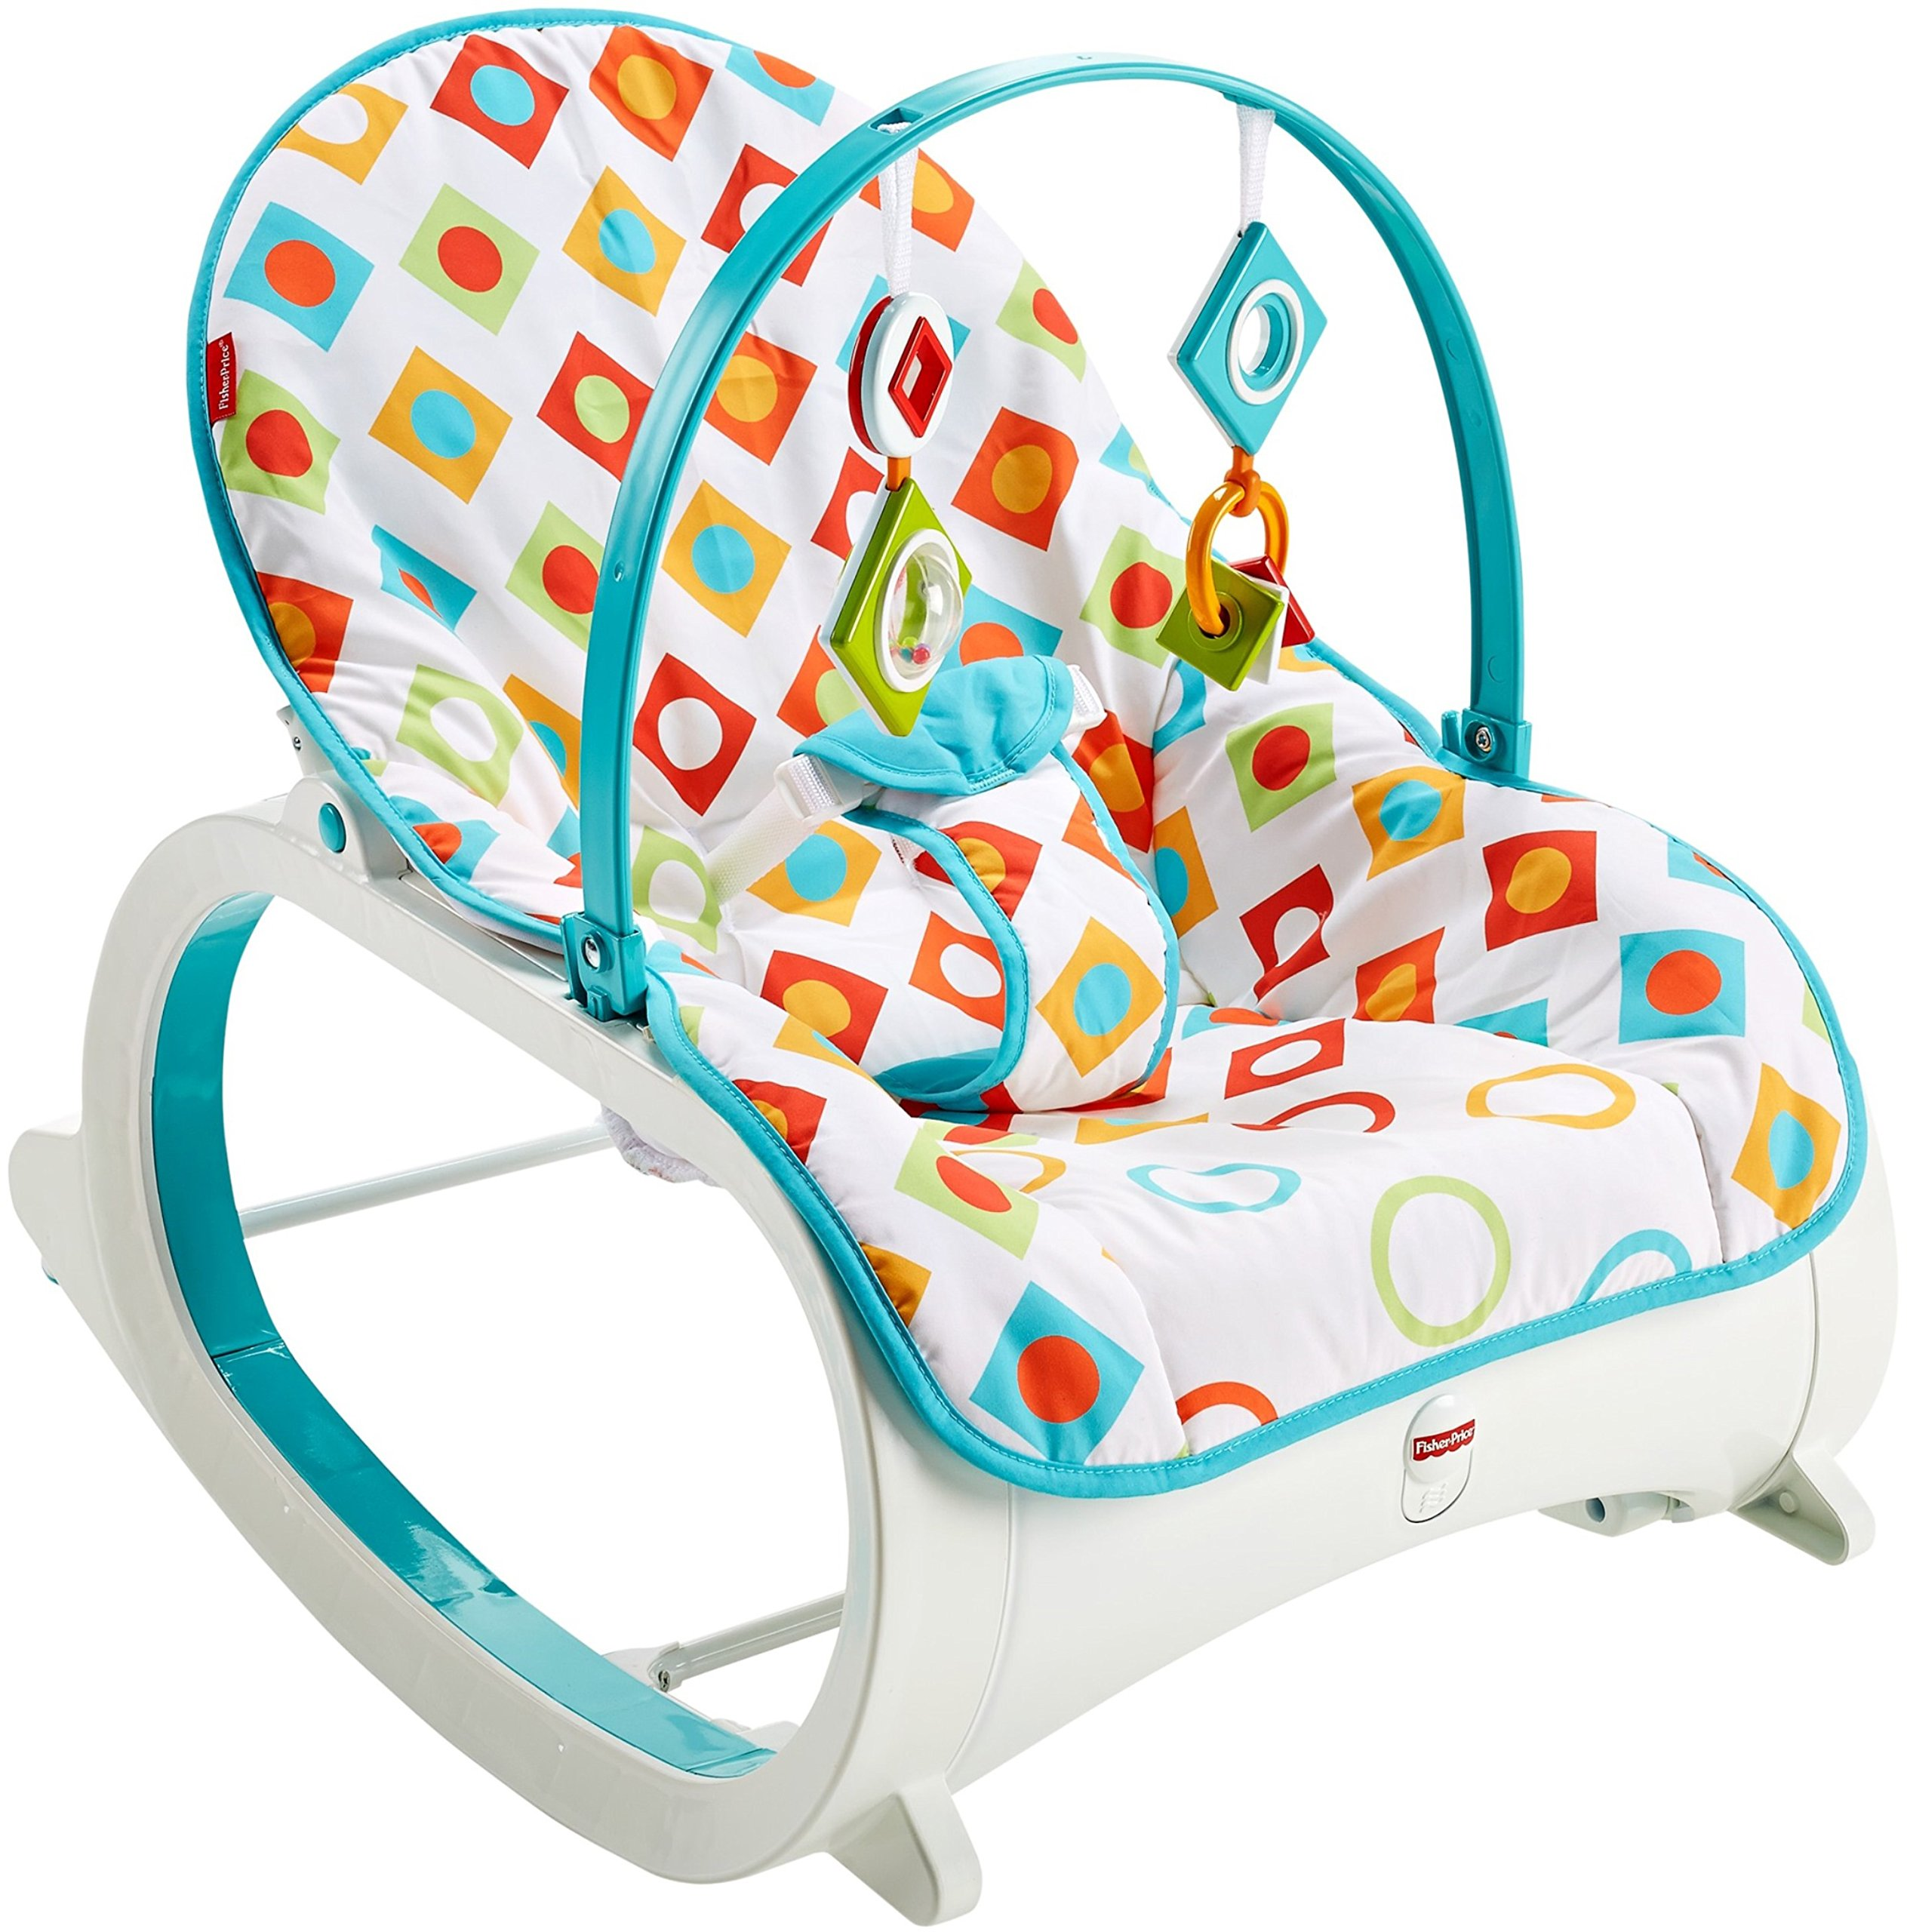 Amazon.com : Fisher-Price Infant-to-Toddler Rocker, Floral